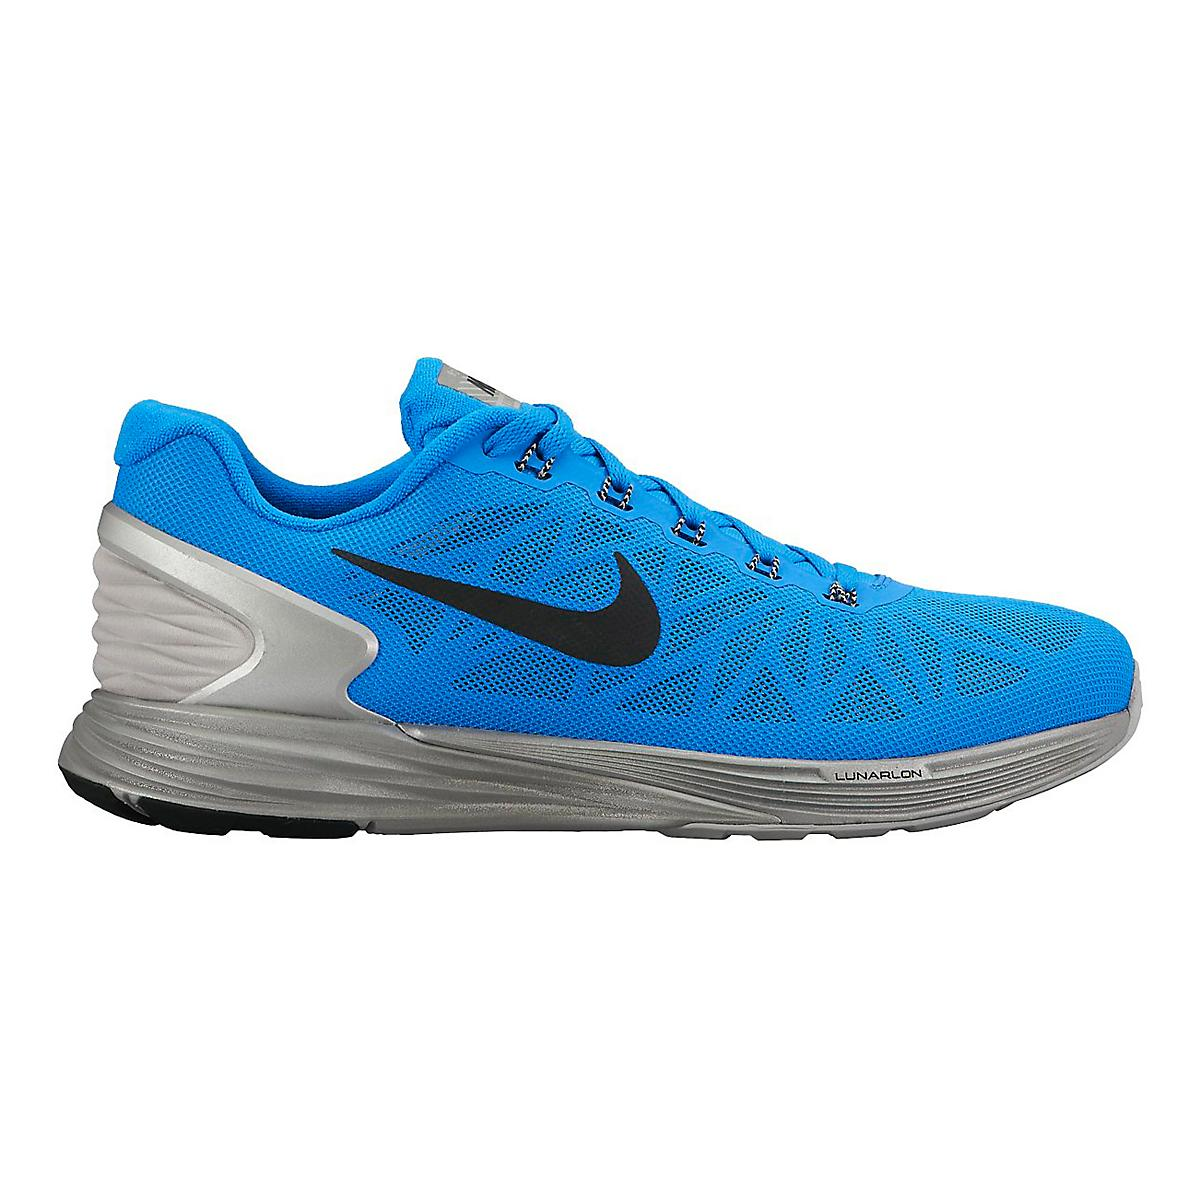 Mens Nike LunarGlide 6 Flash Running Shoe at Road Runner Sports c33e1bf4047a